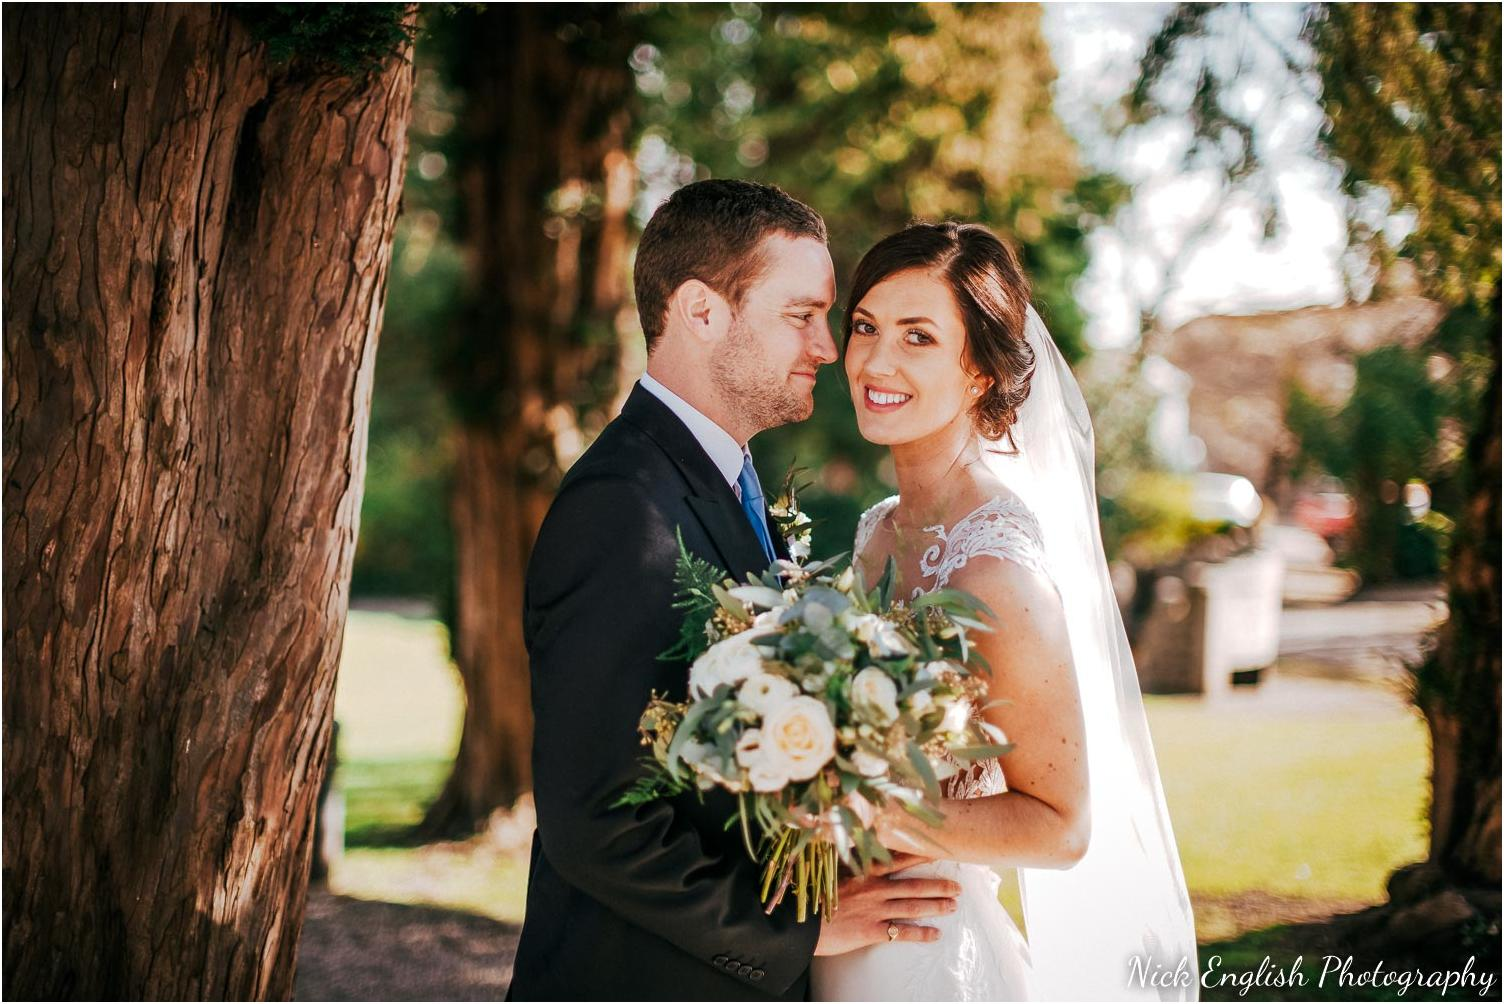 Mitton_Hall_Wedding_Photographer-94.jpg